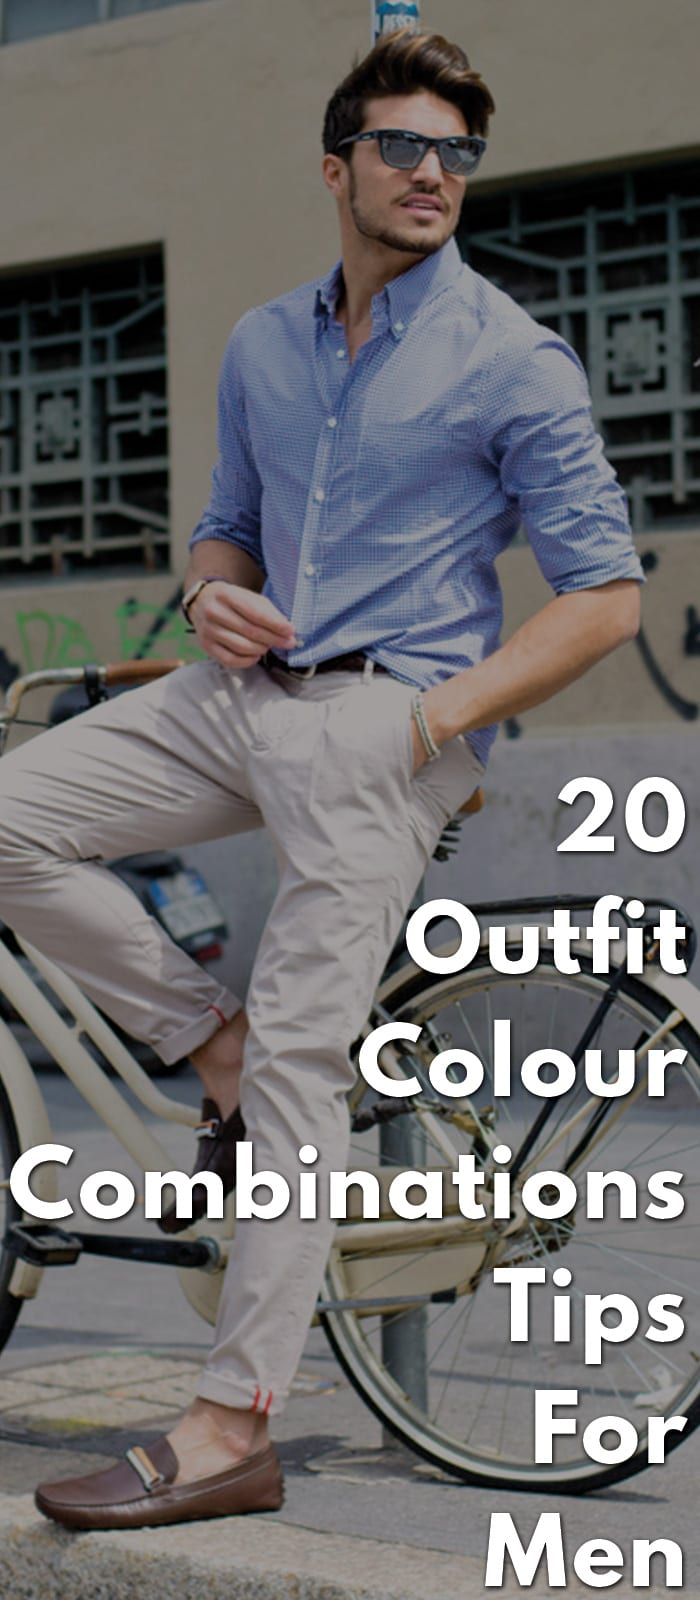 20-Outfit-Colour-Combinations-Tips-For-Men..